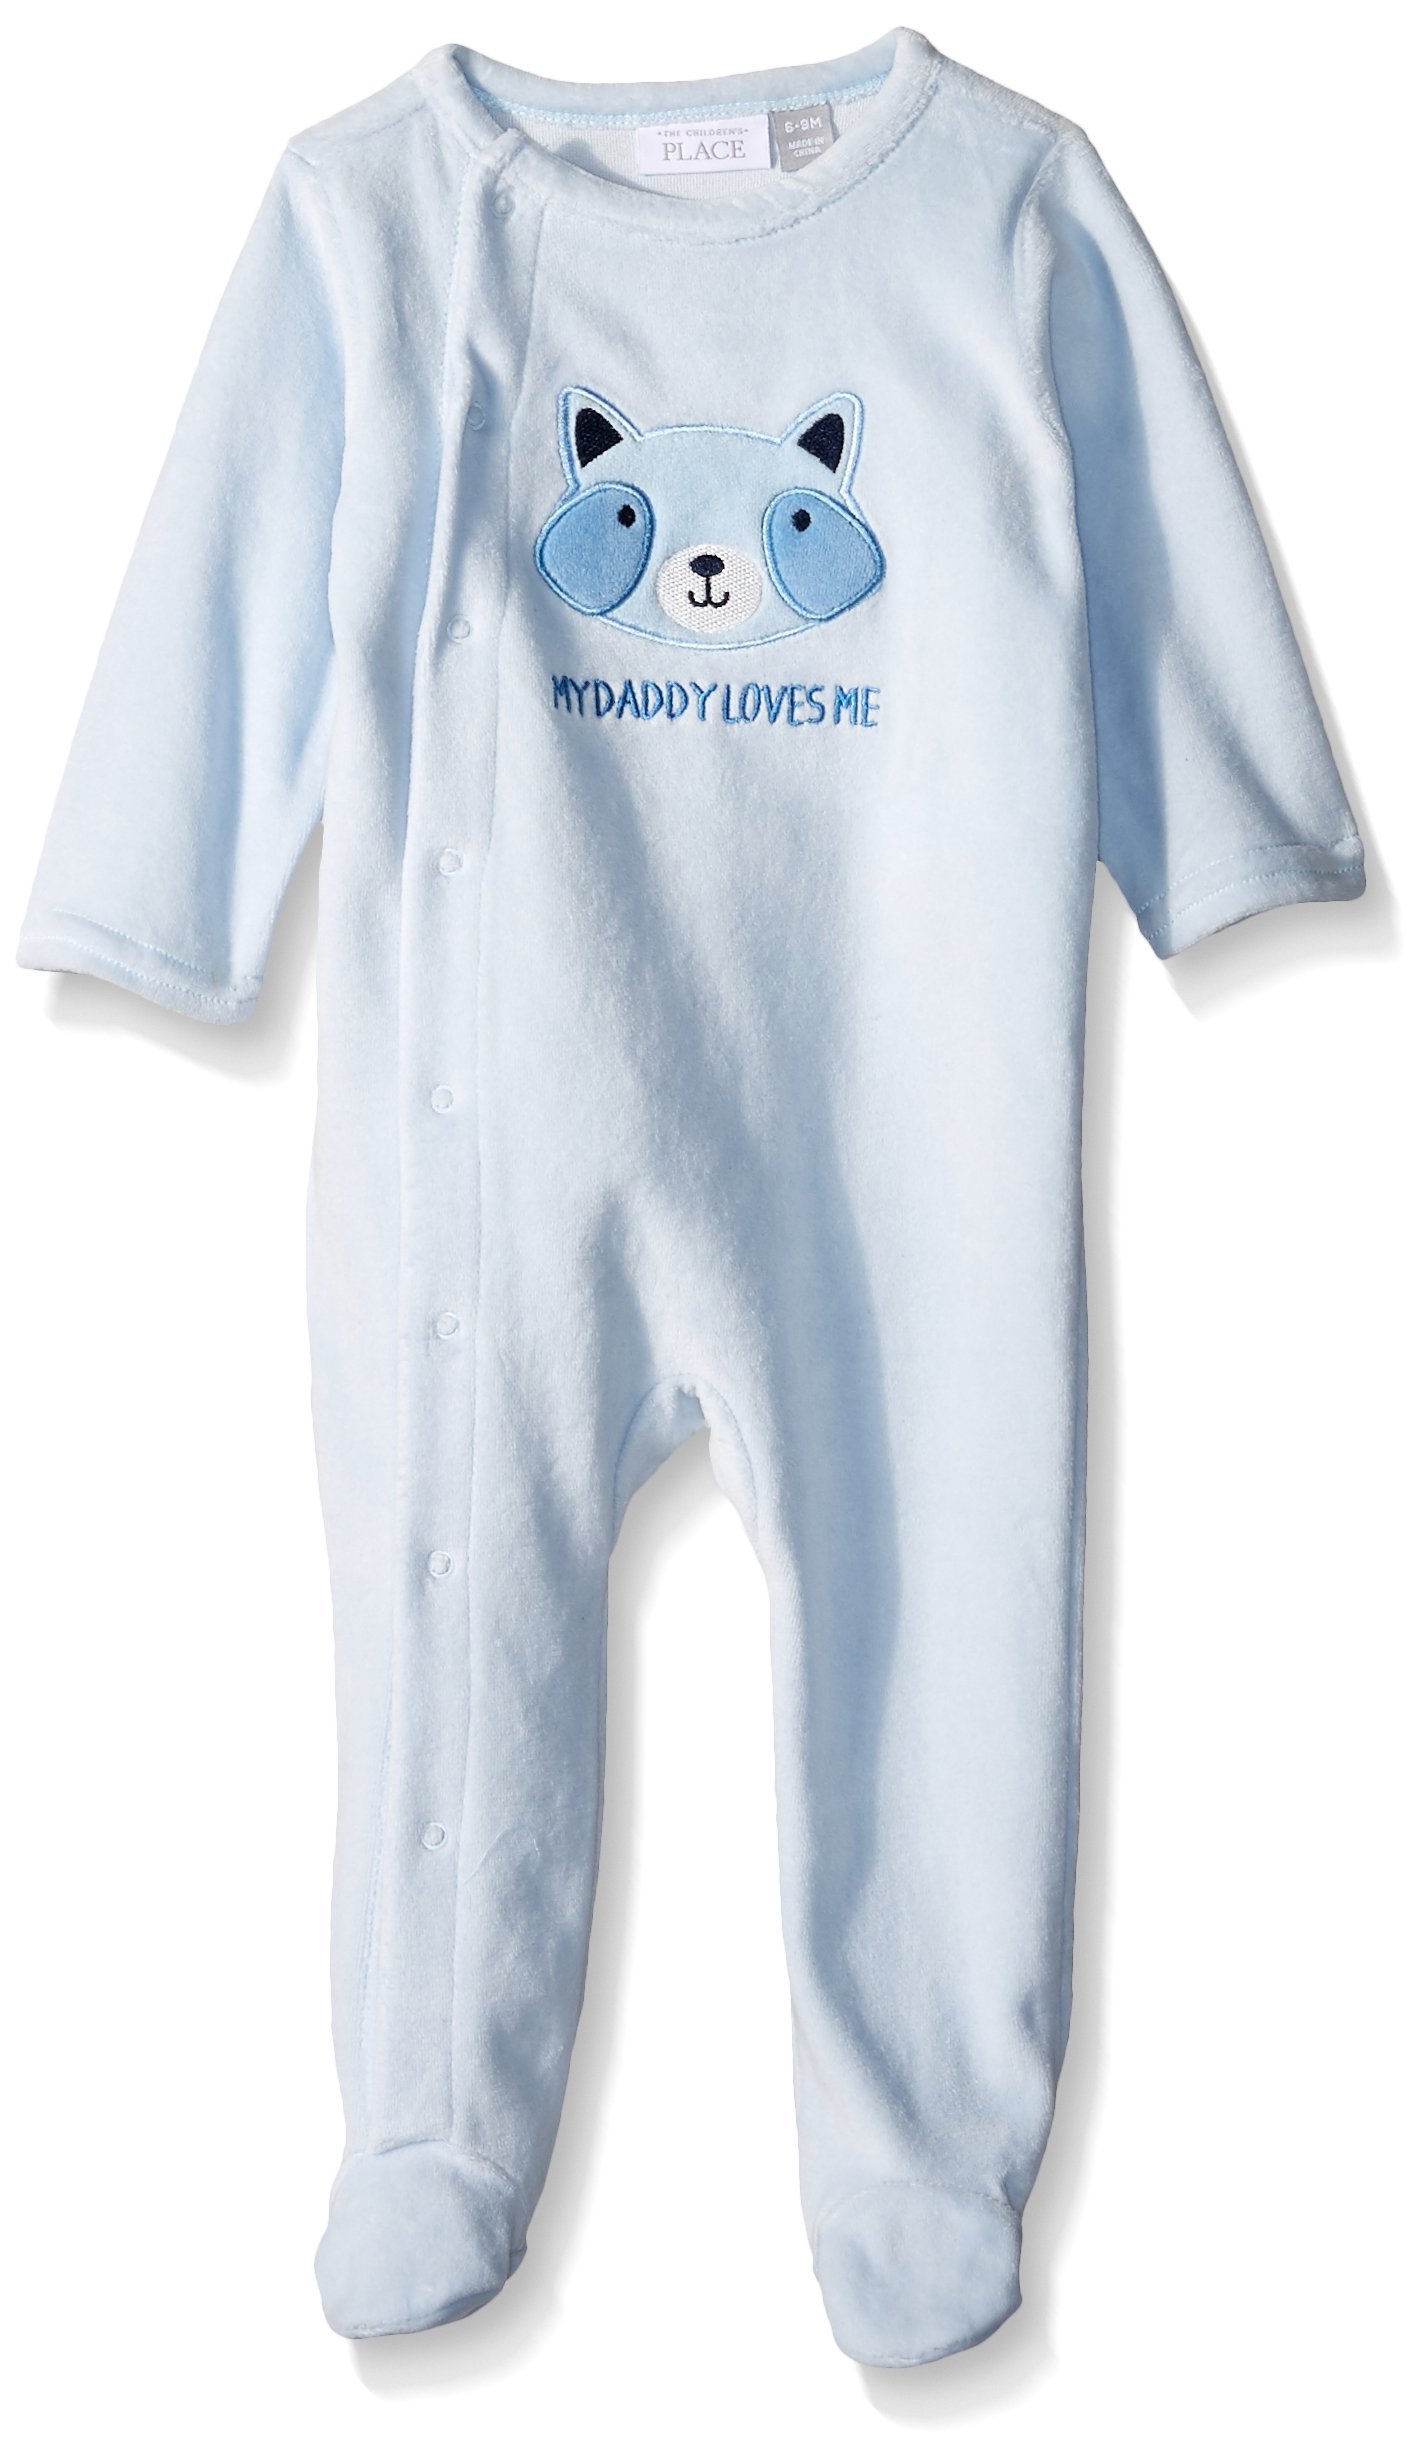 The Children's Place Baby Boys' Sleep 'N Play Romper